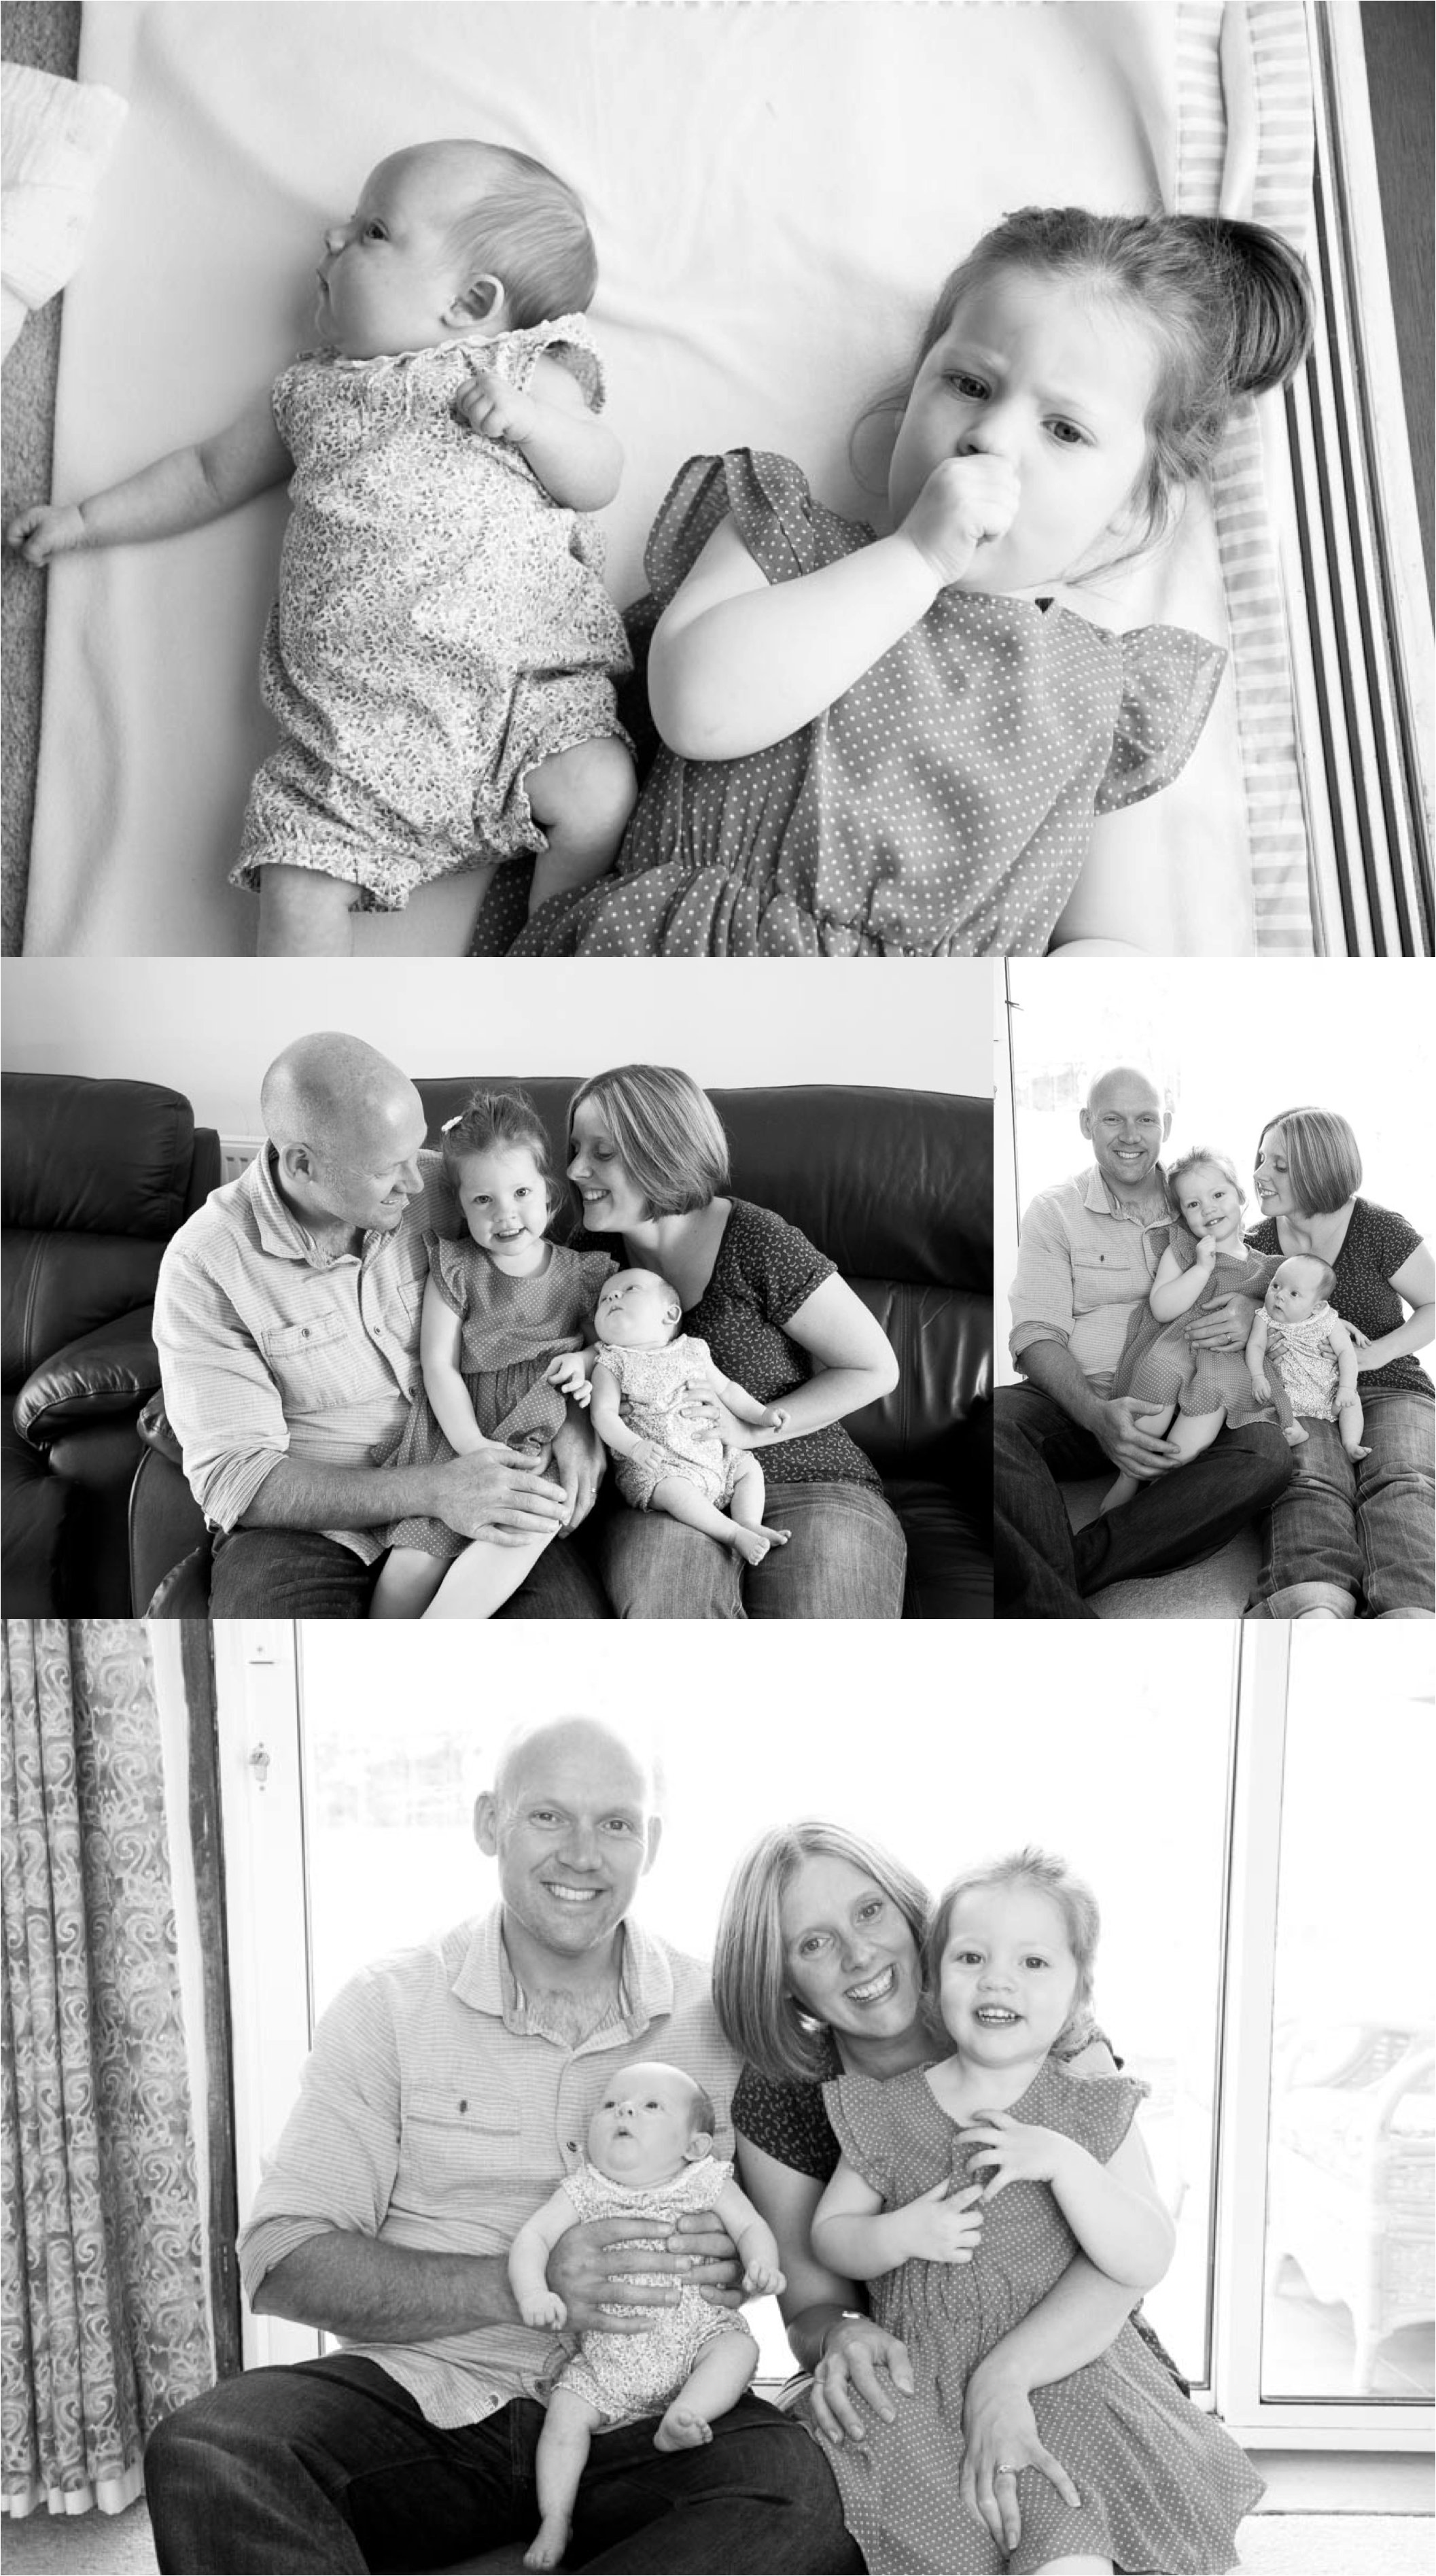 Family photography in black and white, bury st edmunds suffolk